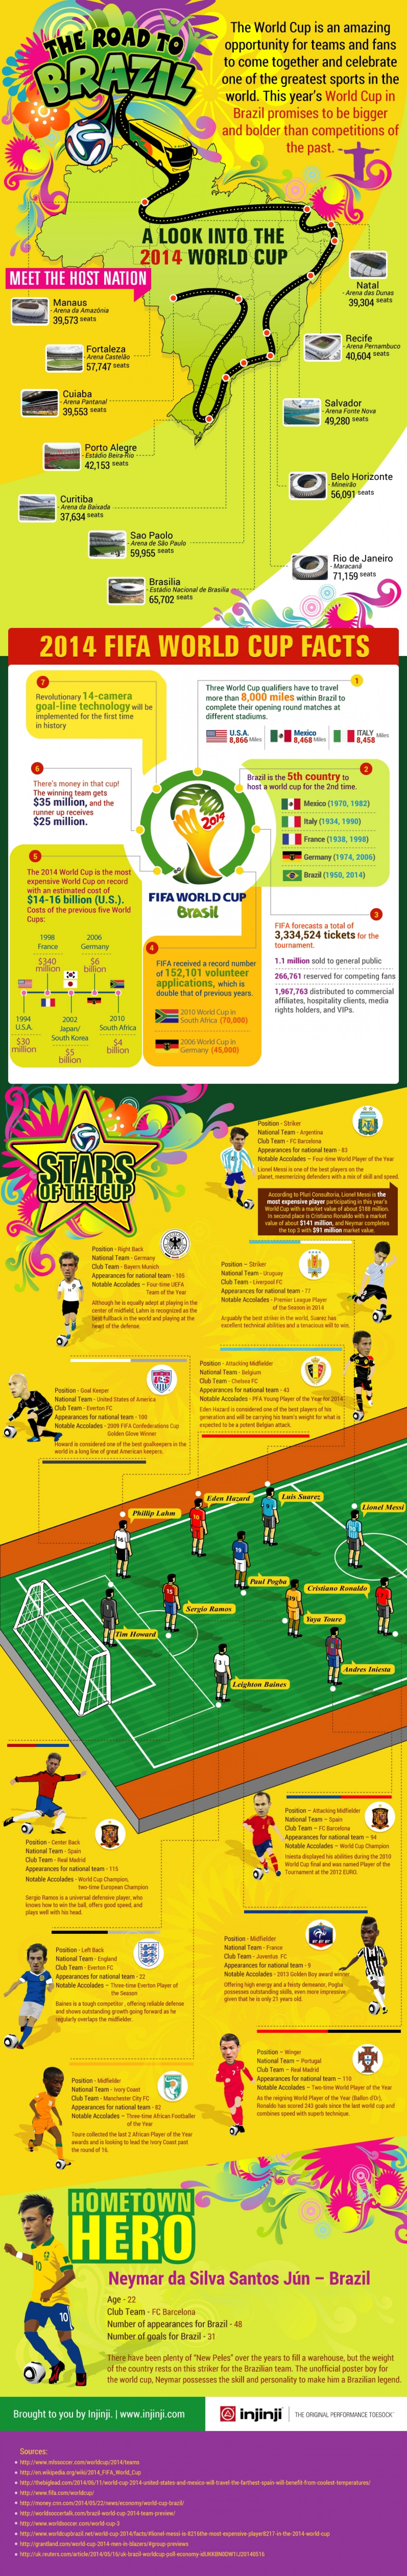 The Road to Brazil: A Look into the 2014 World Cup Infographic